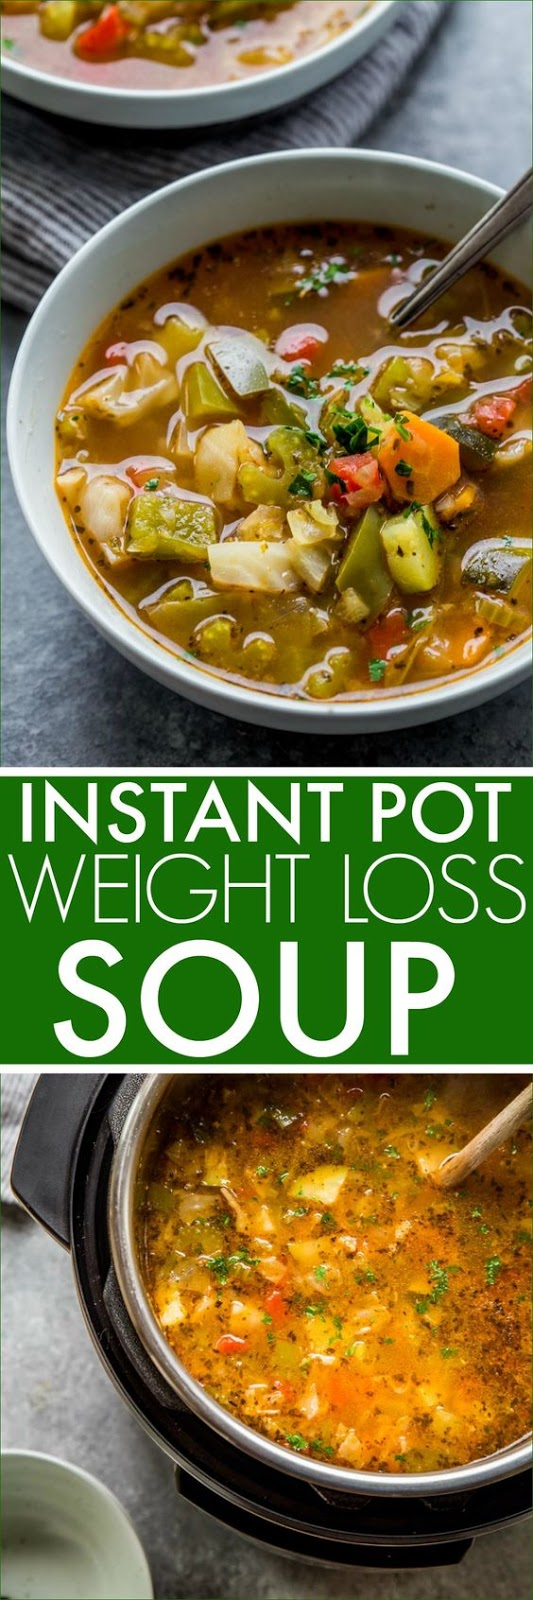 INSTANT POT WEIGHT LOSS SOUP RECIPES